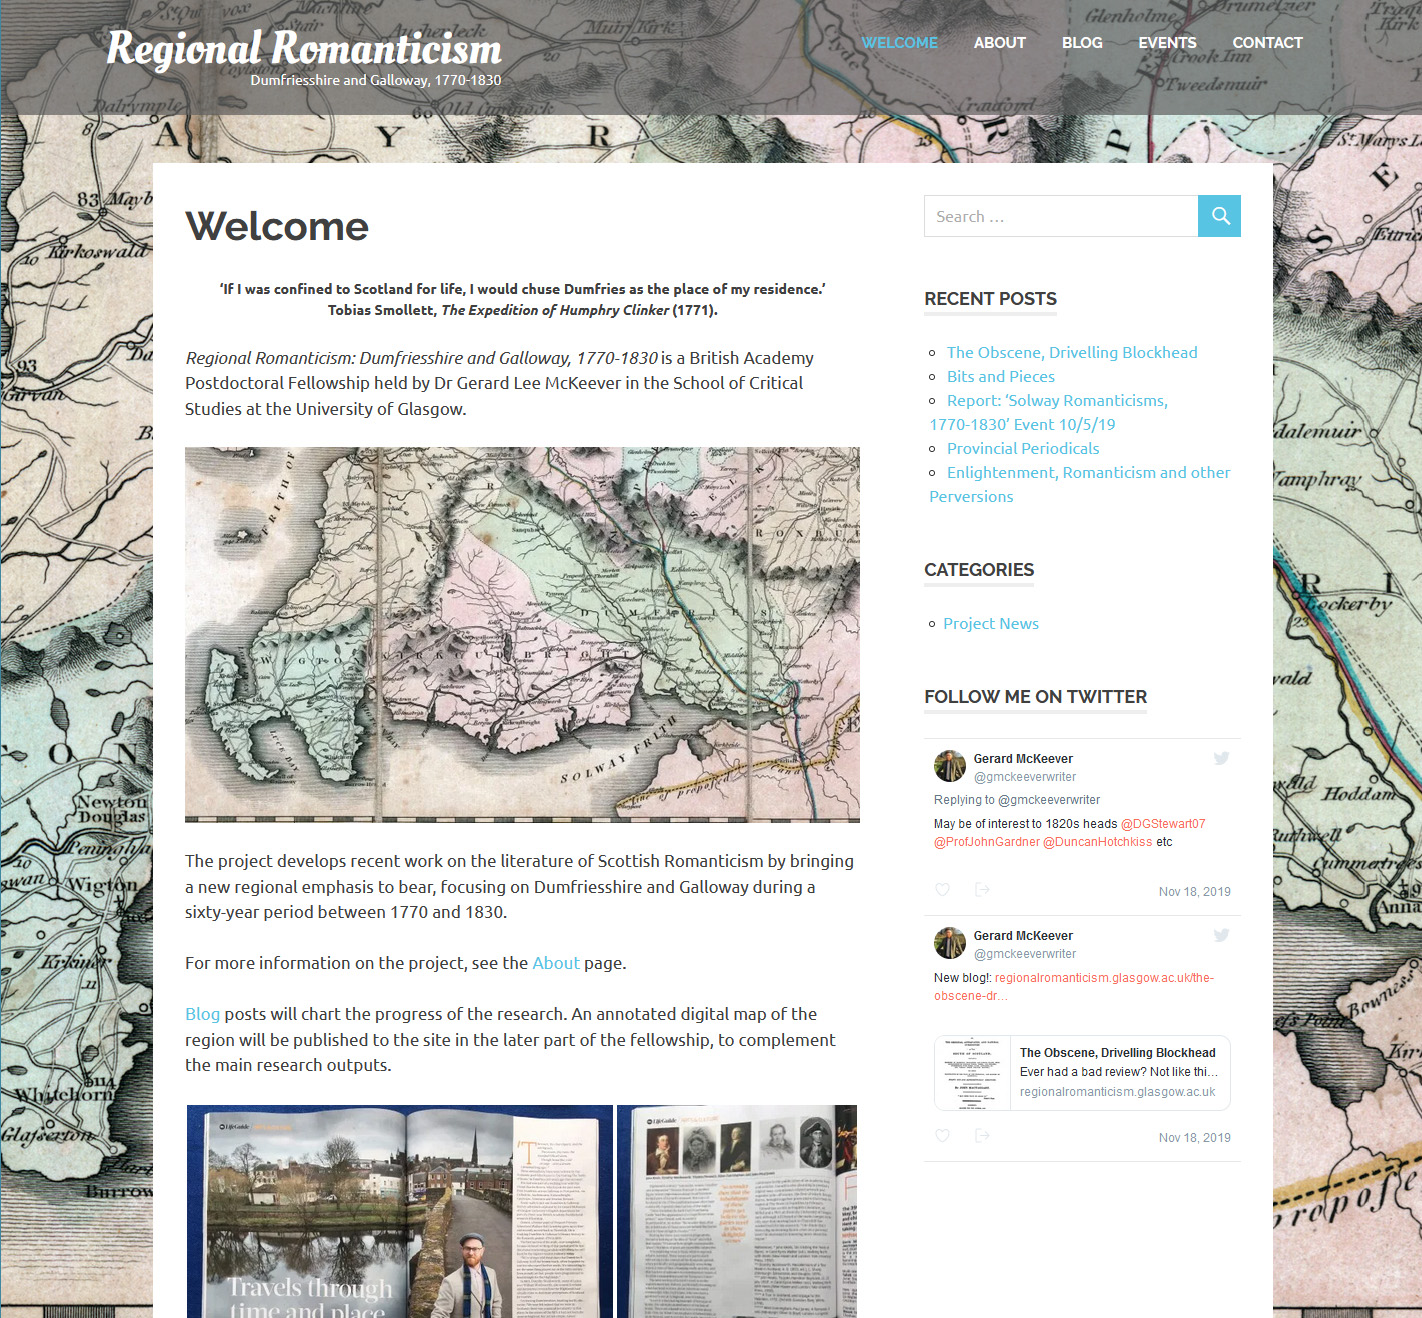 Homepage of the Regional Romanticism website